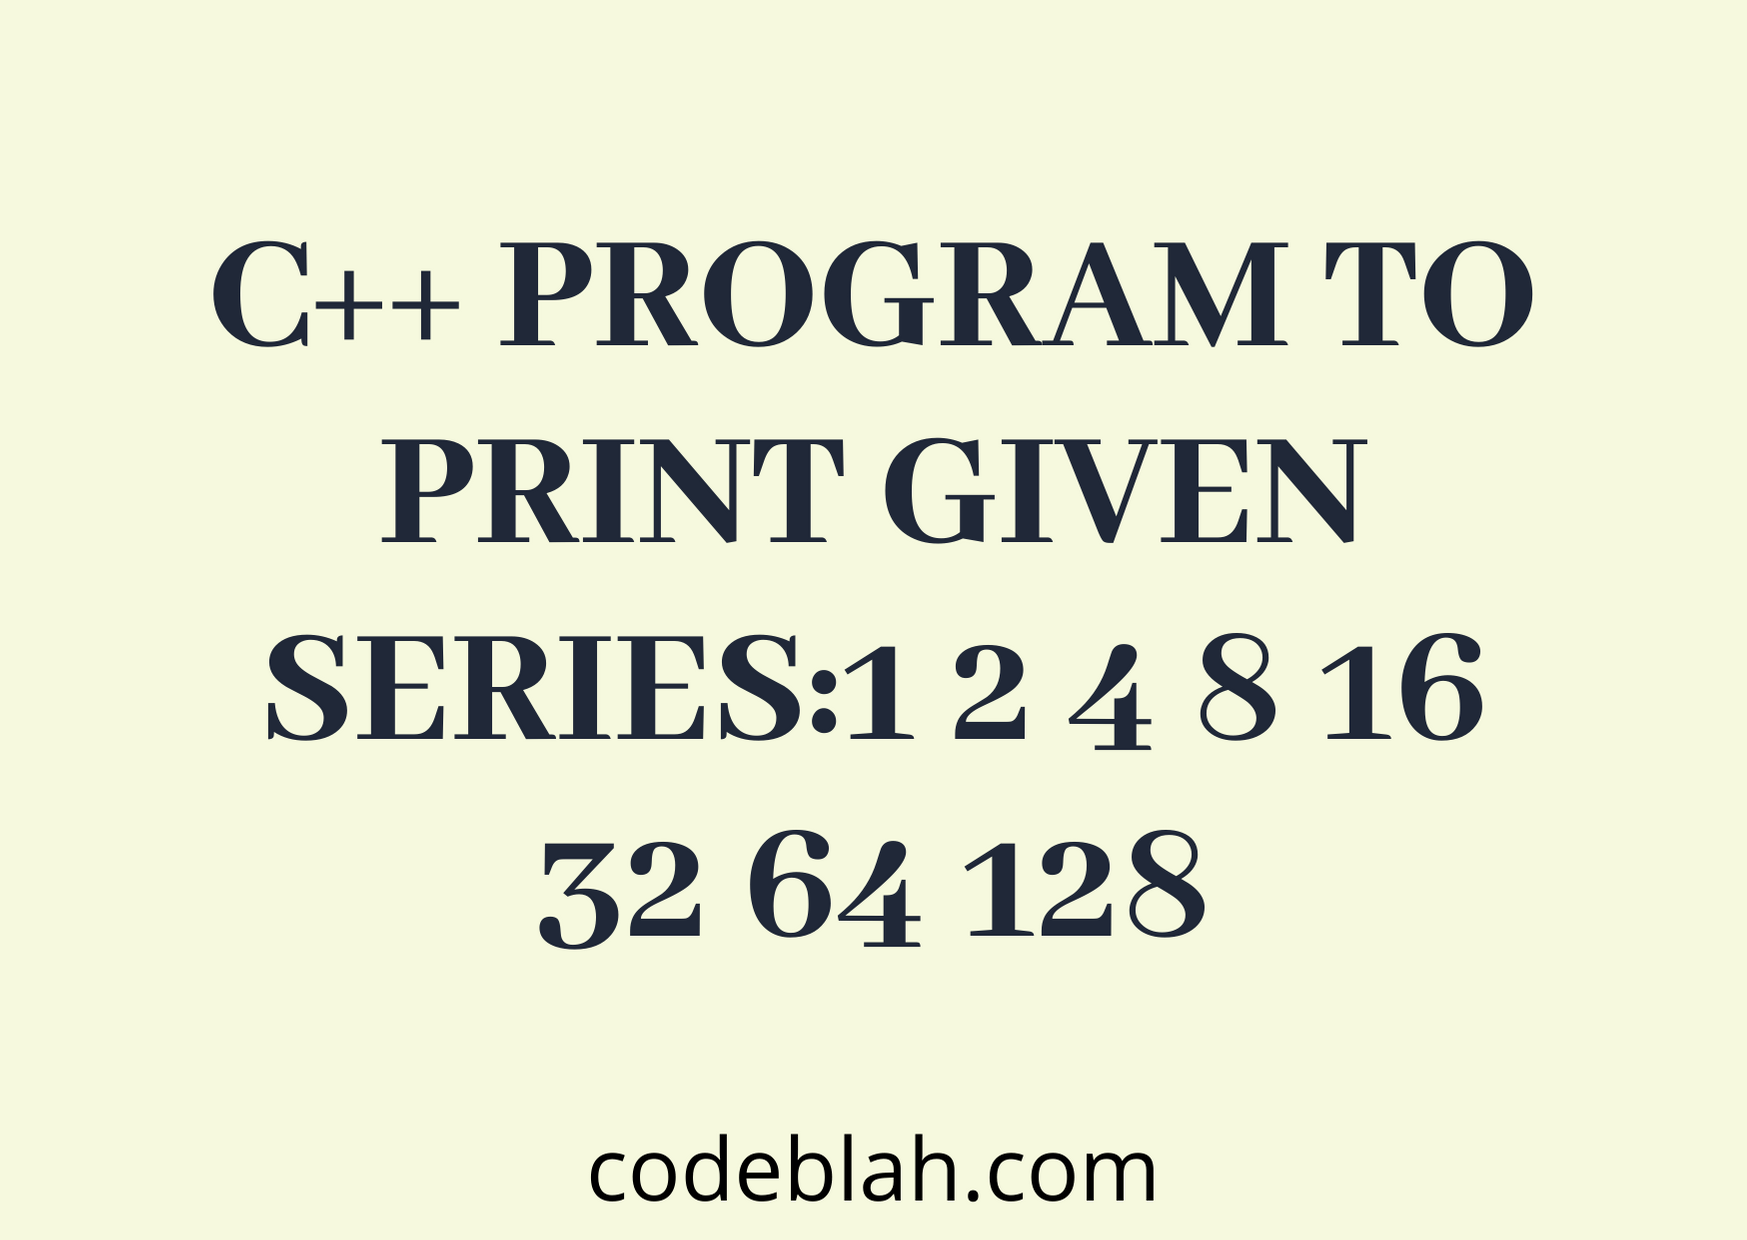 C++ Program To Print given Series:1 2 4 8 16 32 64 128 ...